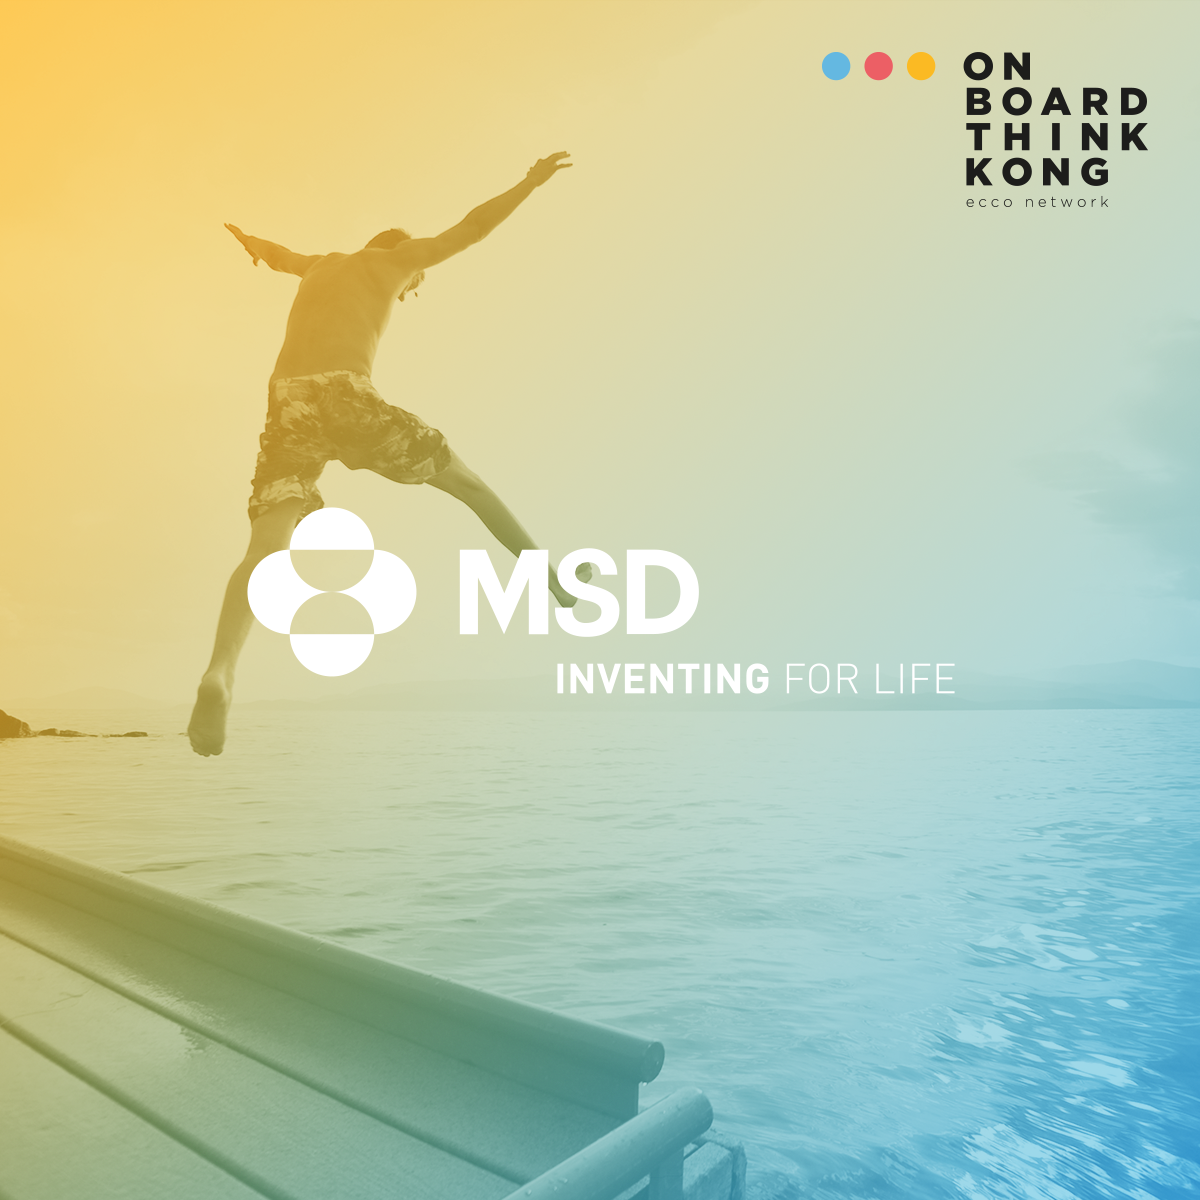 MSD Investing for Live